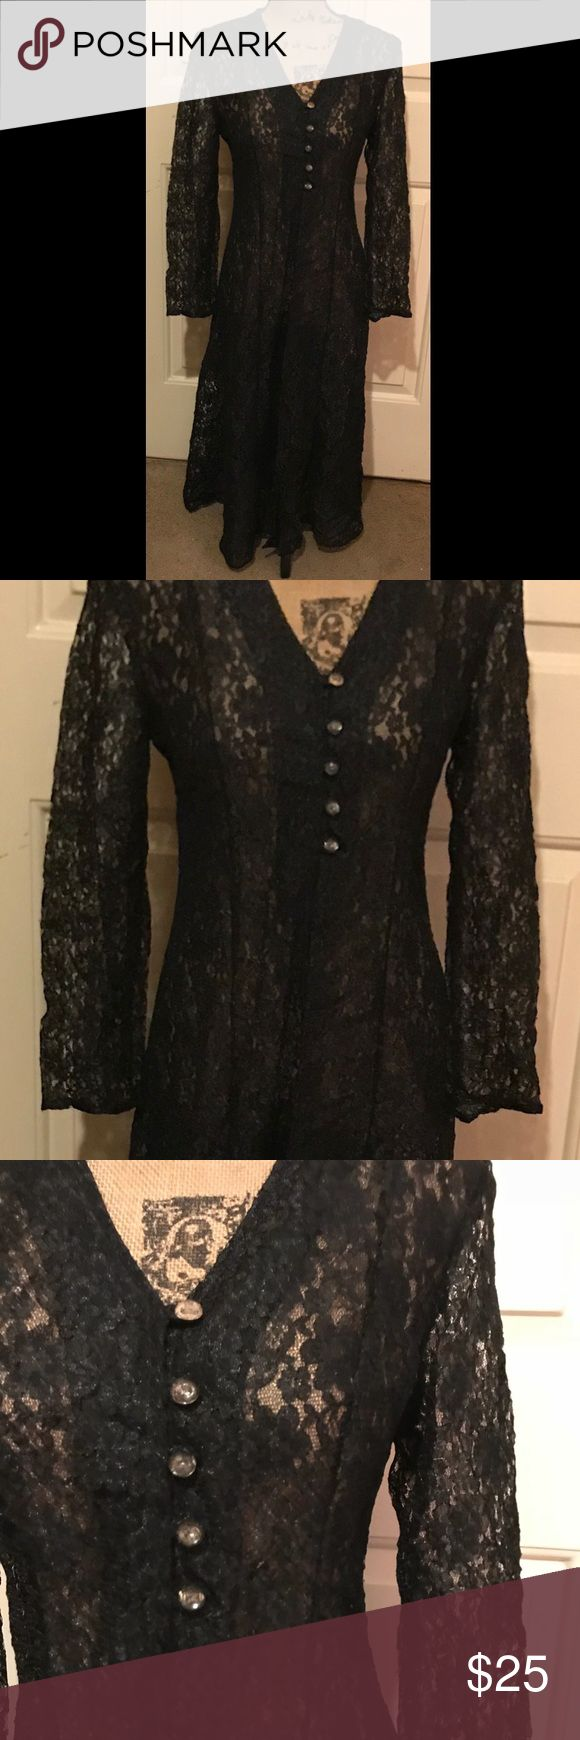 🆕 gorgeous duster dress Very pretty and so versatile! So many ways to style it • even more beautiful in person! 🛍Bundles of 5 or more items get 50% off!-either make offer on the bundle or comment on each item you want and I'll make a separate listing!🛍 📣Buyer responsible for extra shipping when likely to be over 5 lbs 📣 ❌Absolutely no trades!❌ 🔵Color may vary in person!🔴 ◾️Serious buyers only!▪️ 😻 cat friendly home! 😻 🙏🏼thank you!🙏🏼 Dresses